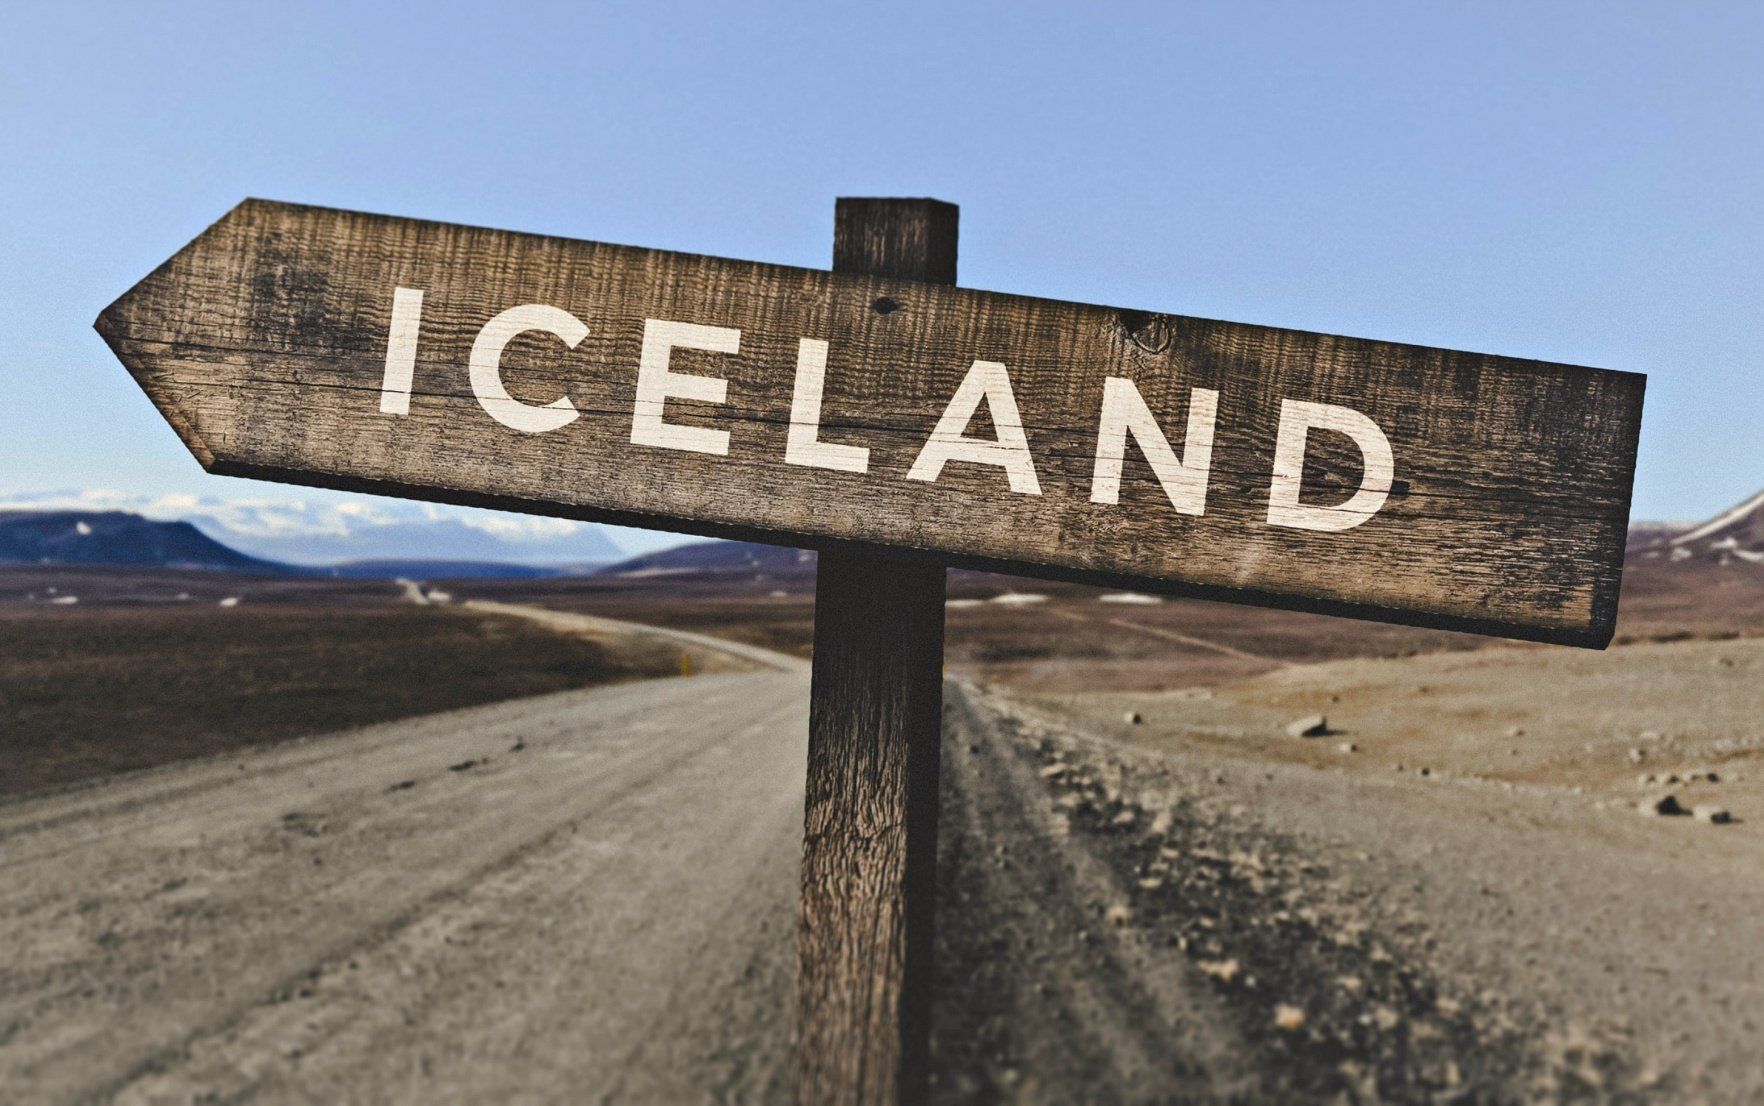 Iceland Travel Advice by Firebird Tours